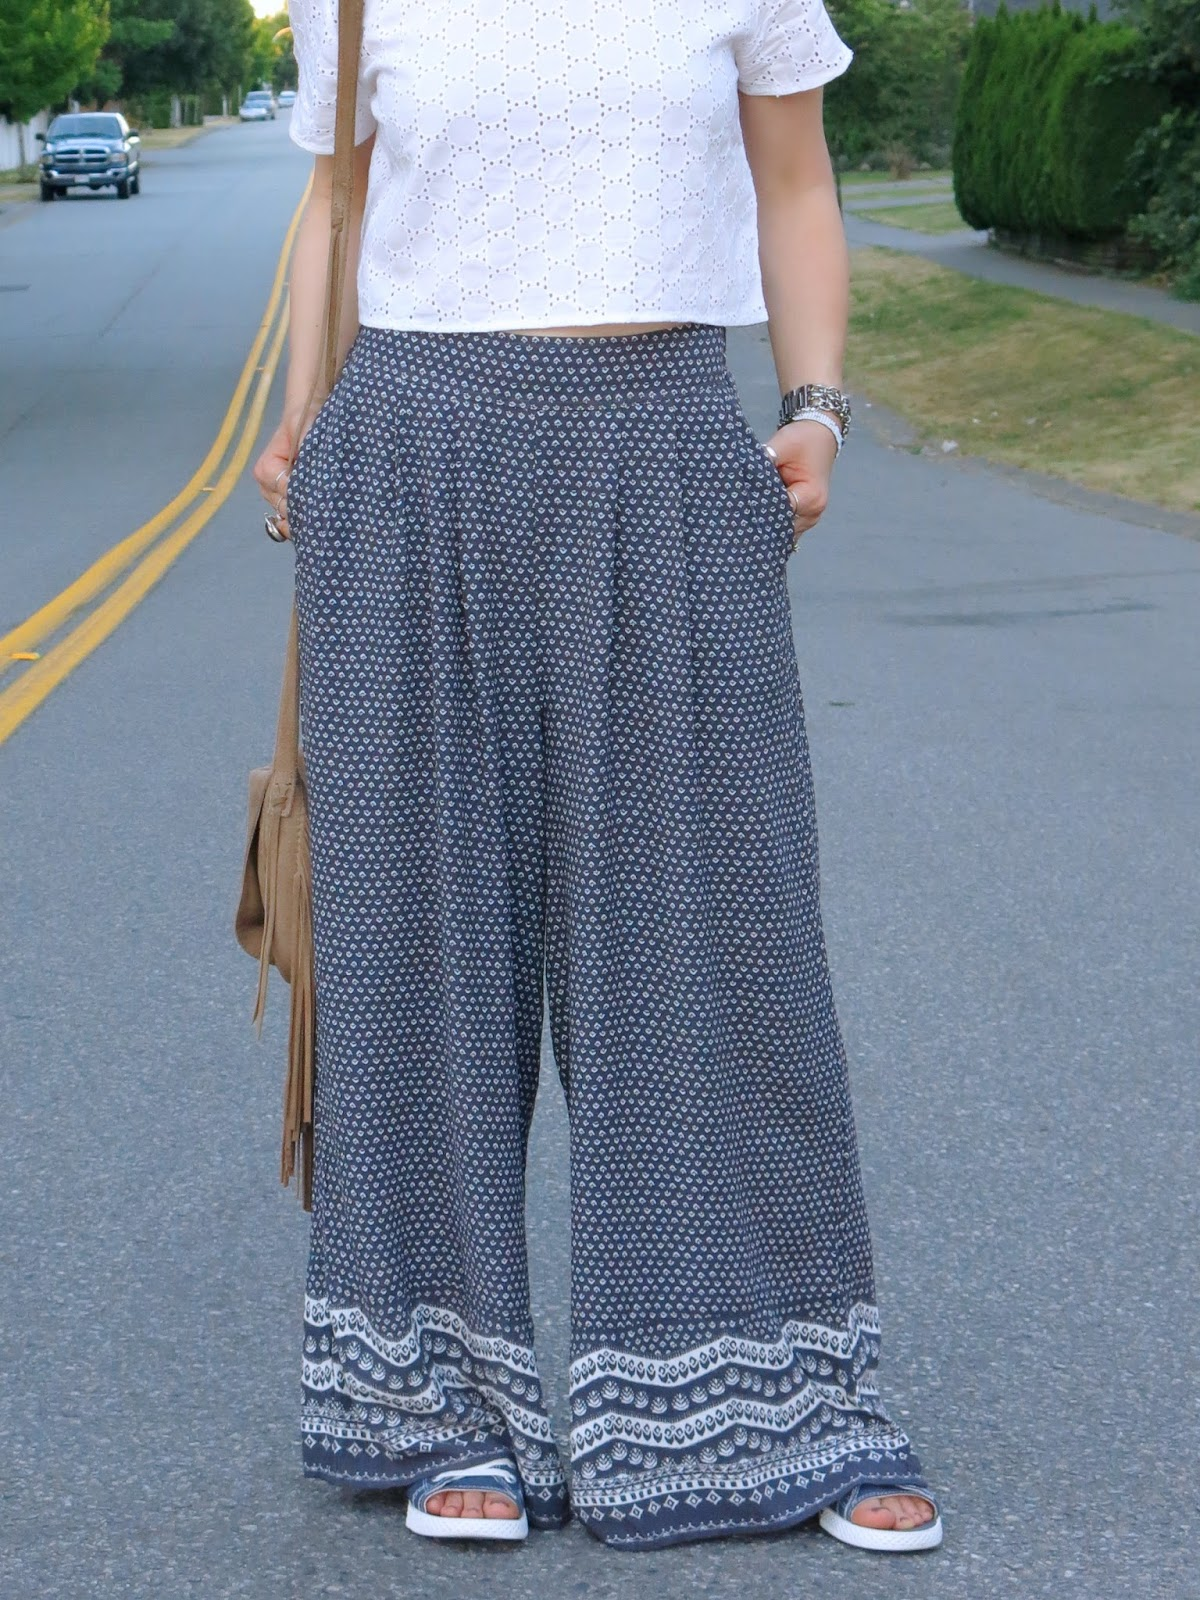 styling palazzo pants with a white eyelet crop top